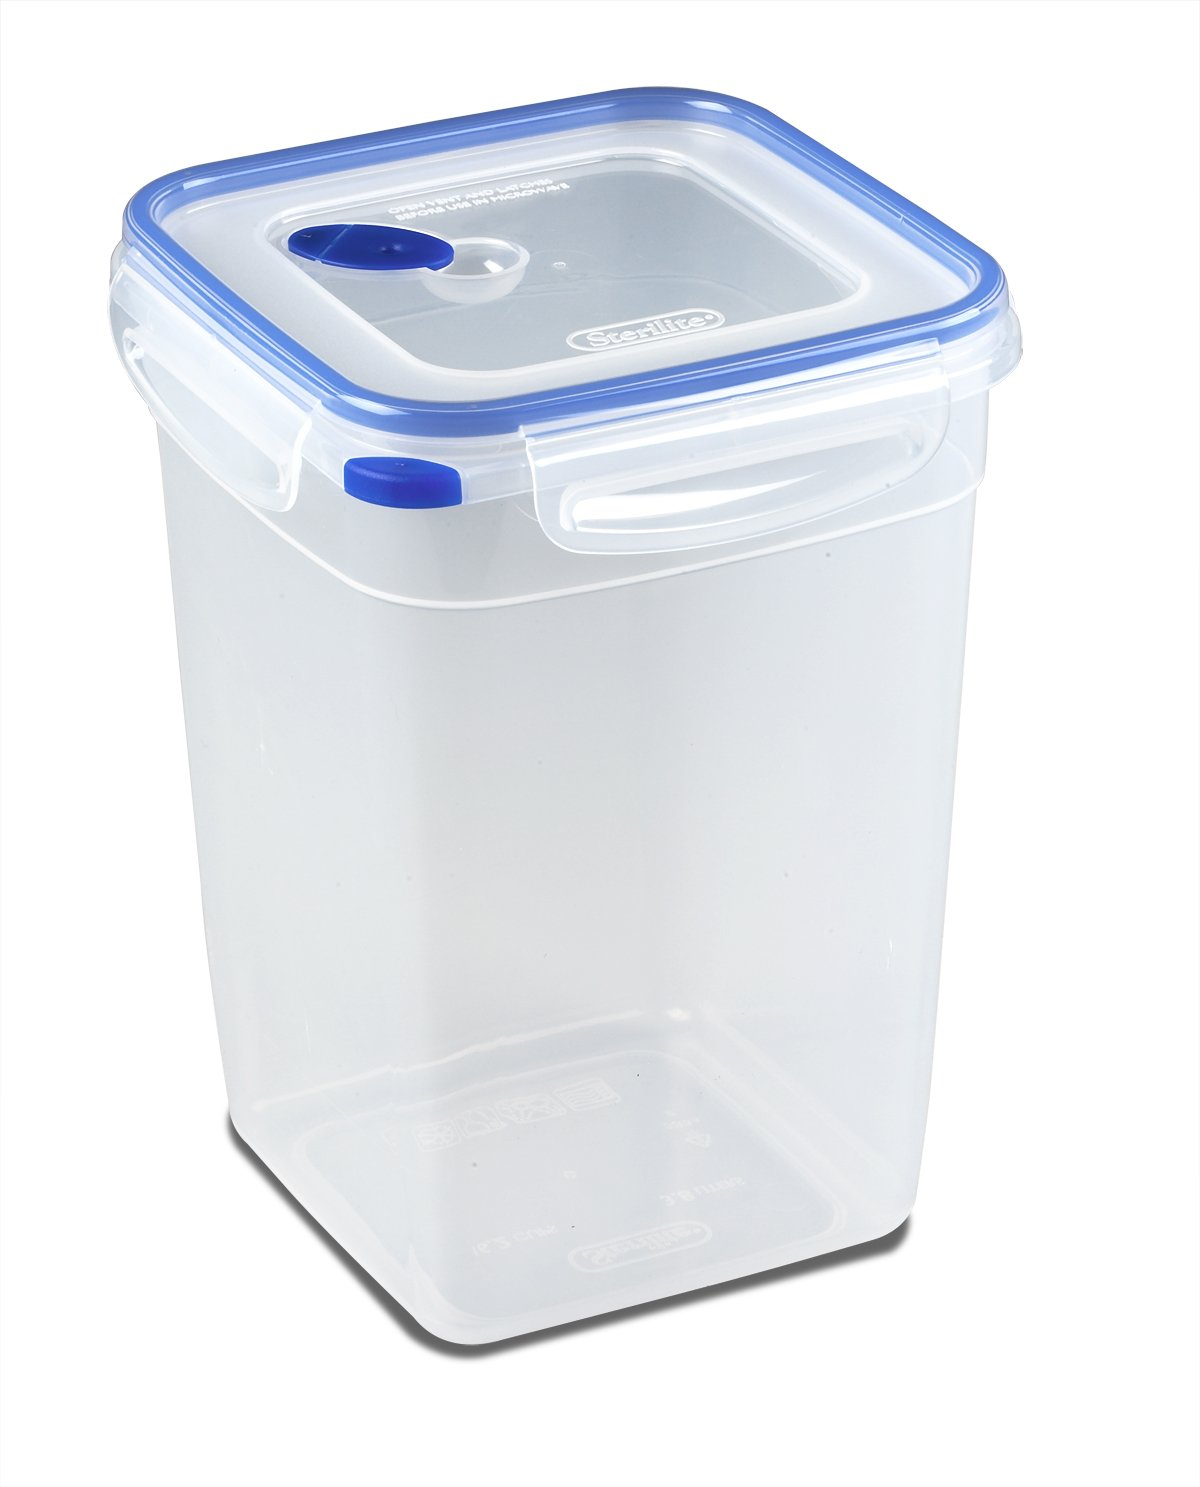 Sterilite 03344706 Ultra-Seal 16.2 Cup Food Storage Container, See-Through Lid & Base with Blue Accents, 6-Pack